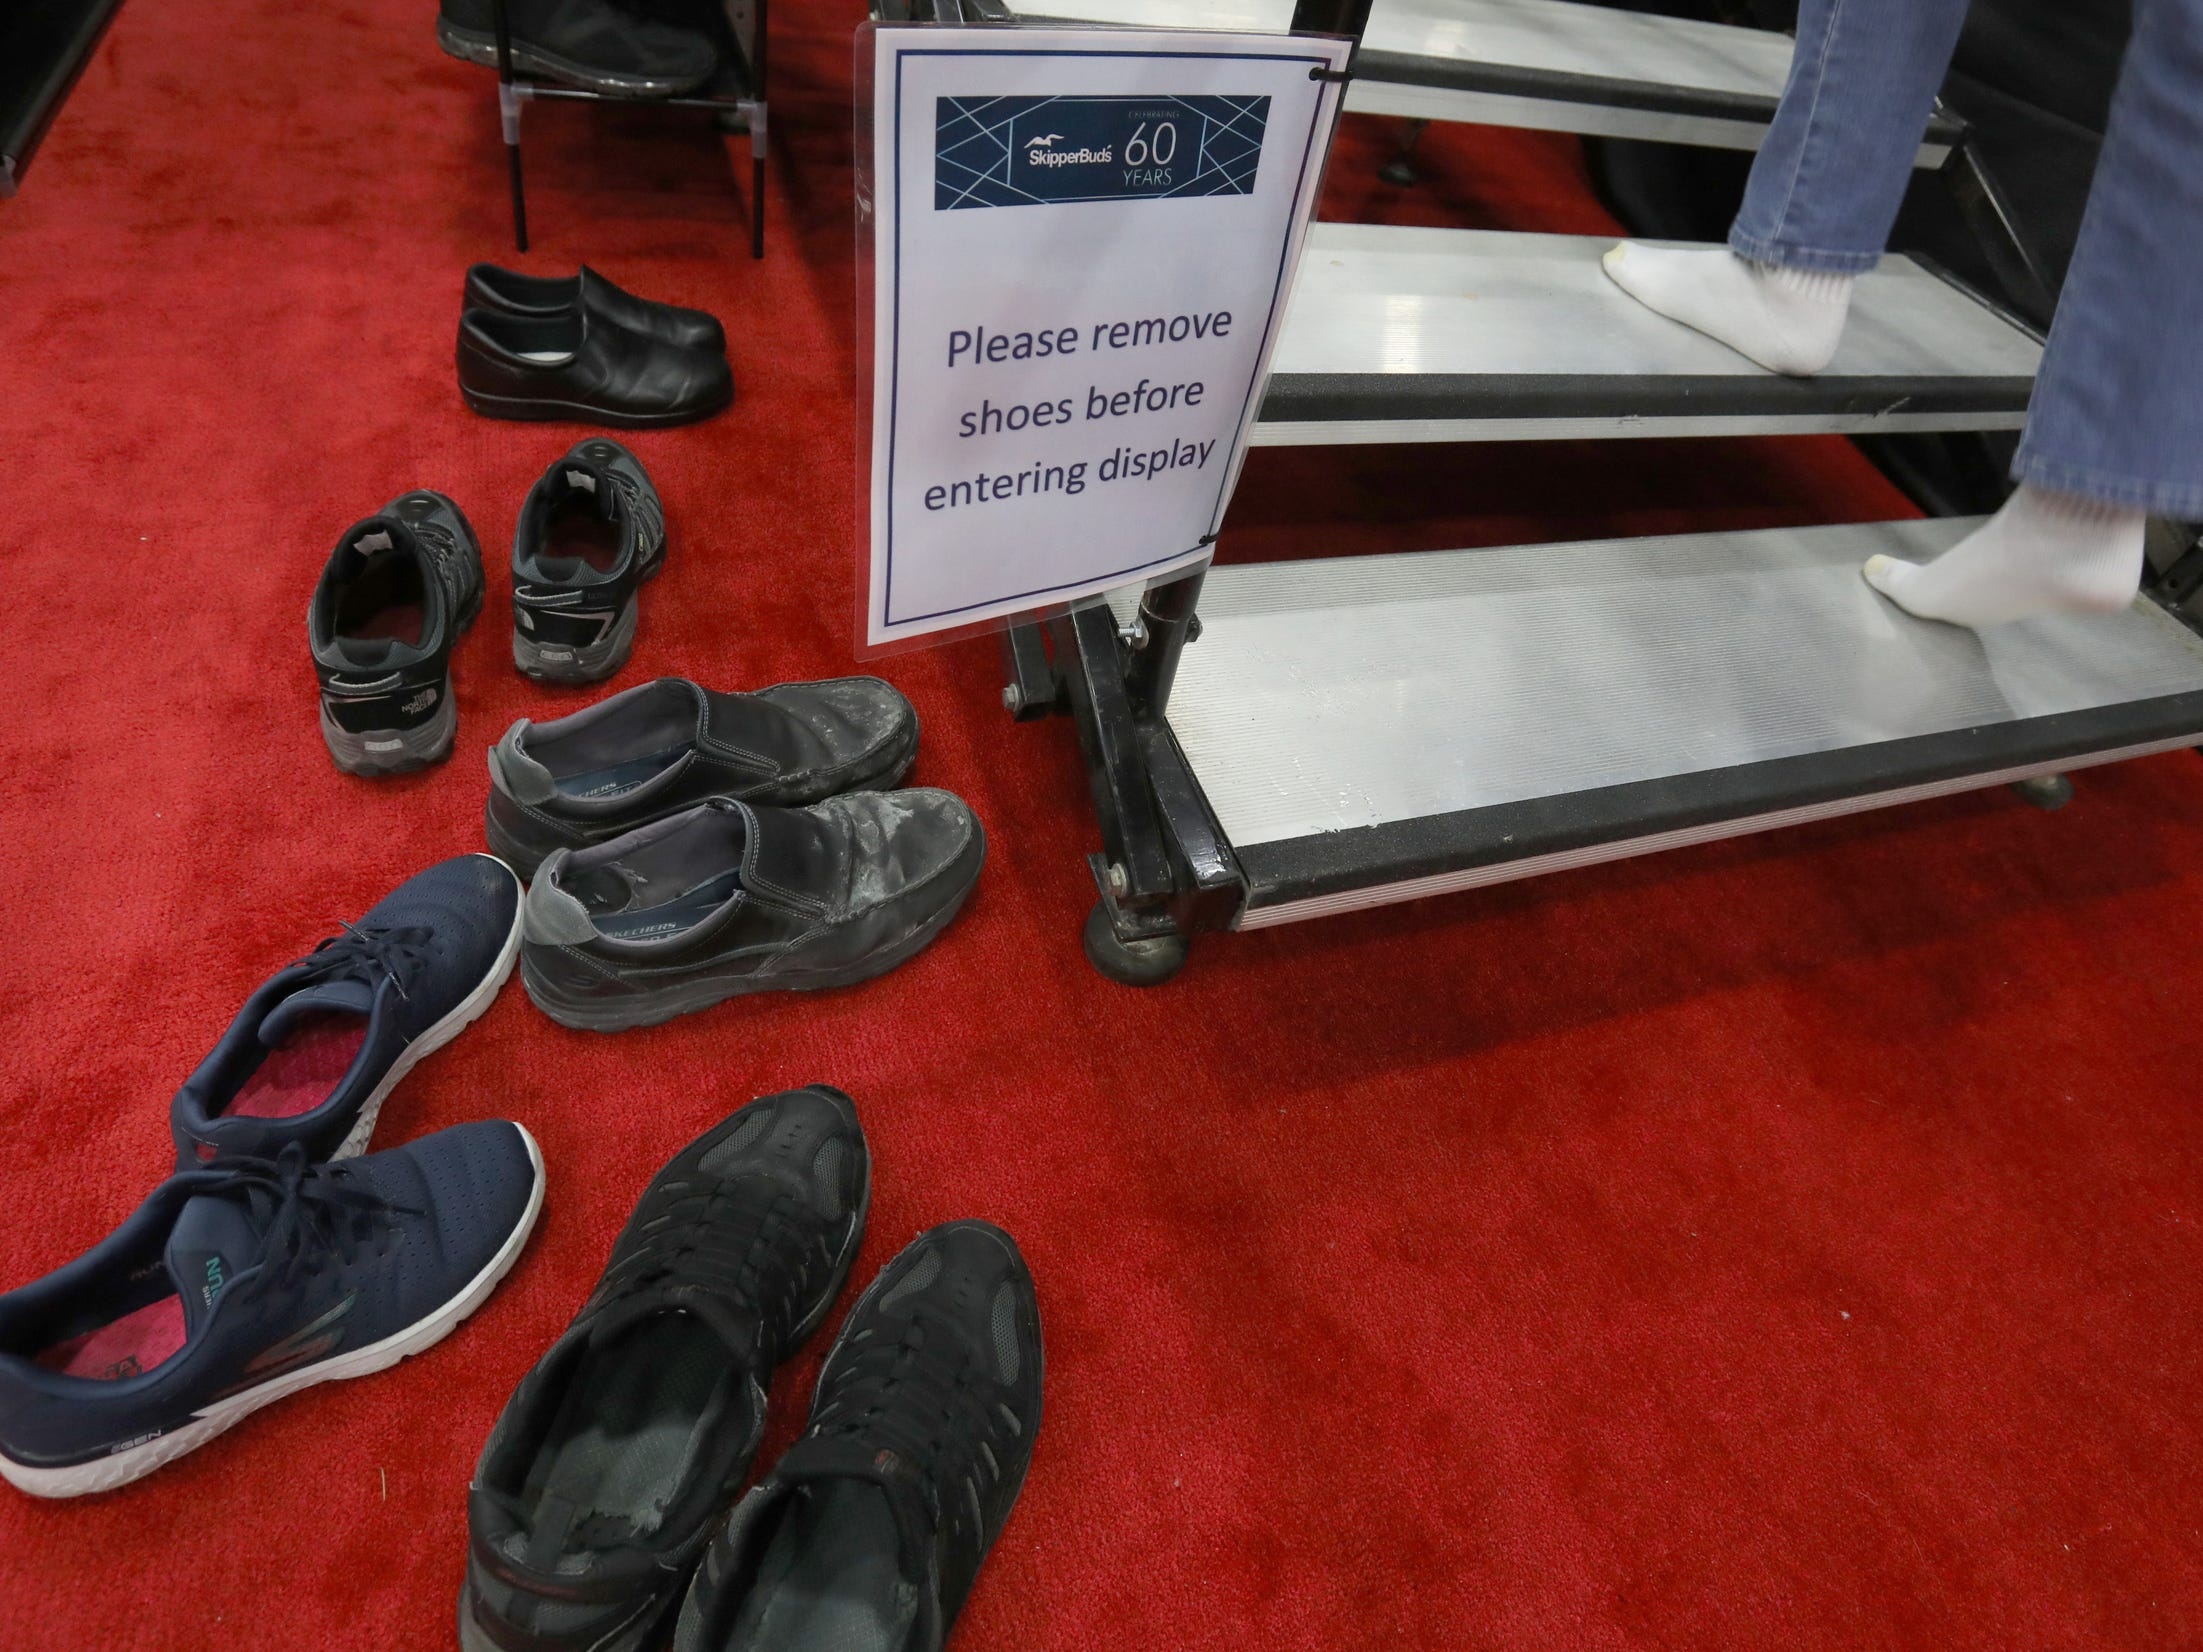 Because of the expensive yachts for sale at the Skipper Buds display people had to take off their shoes so the flooring of yachts and boats wouldn't get scuffed or marked up during the Detroit Boat Show at Cobo Center in Detroit on Saturday, February 16, 2019.